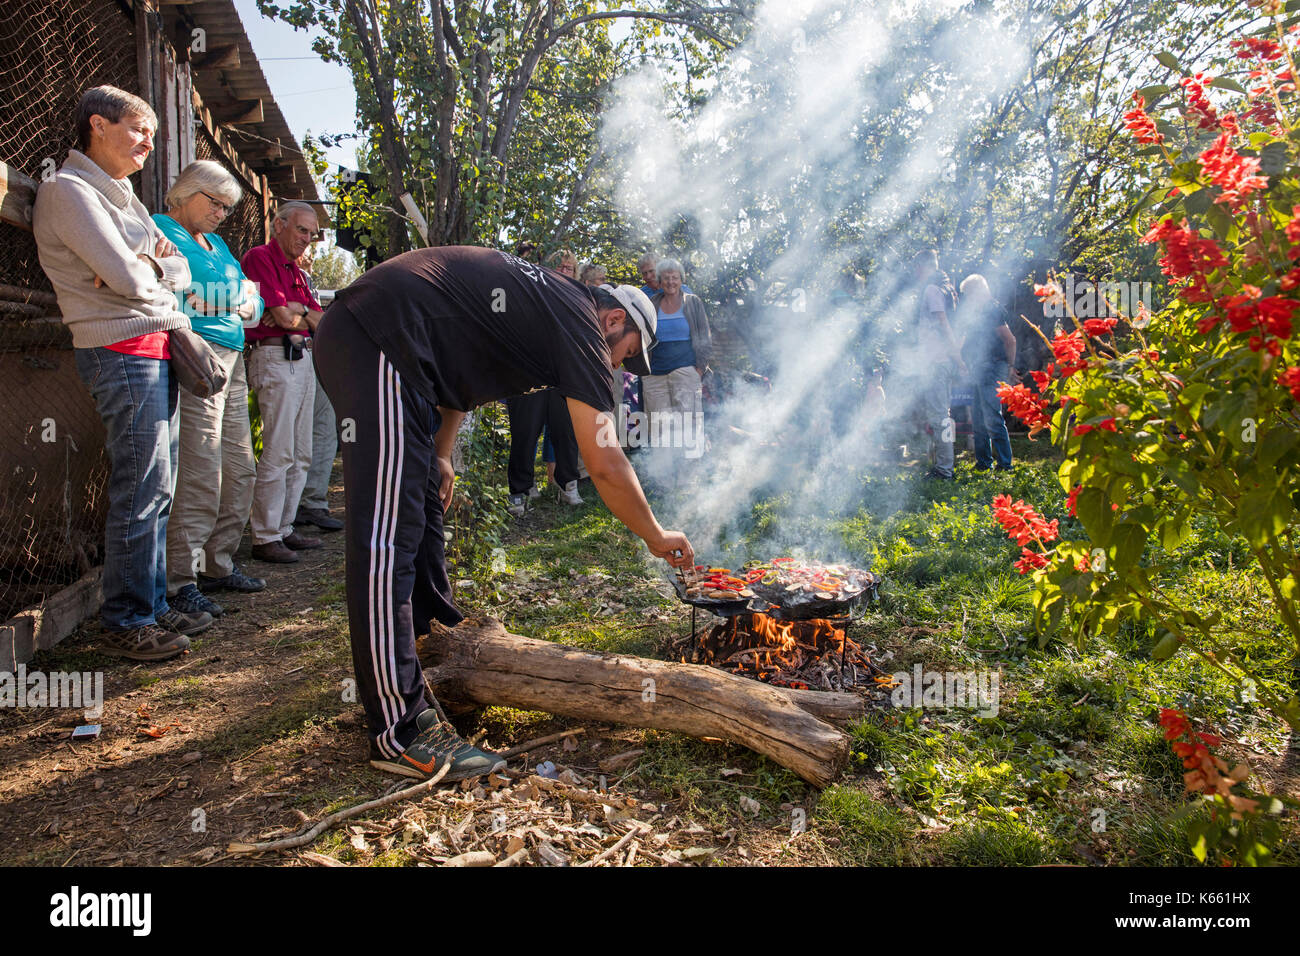 Kyrgyz man cooking food for tourists on a traditional stone barbecue in Kyrgyzstan - Stock Image